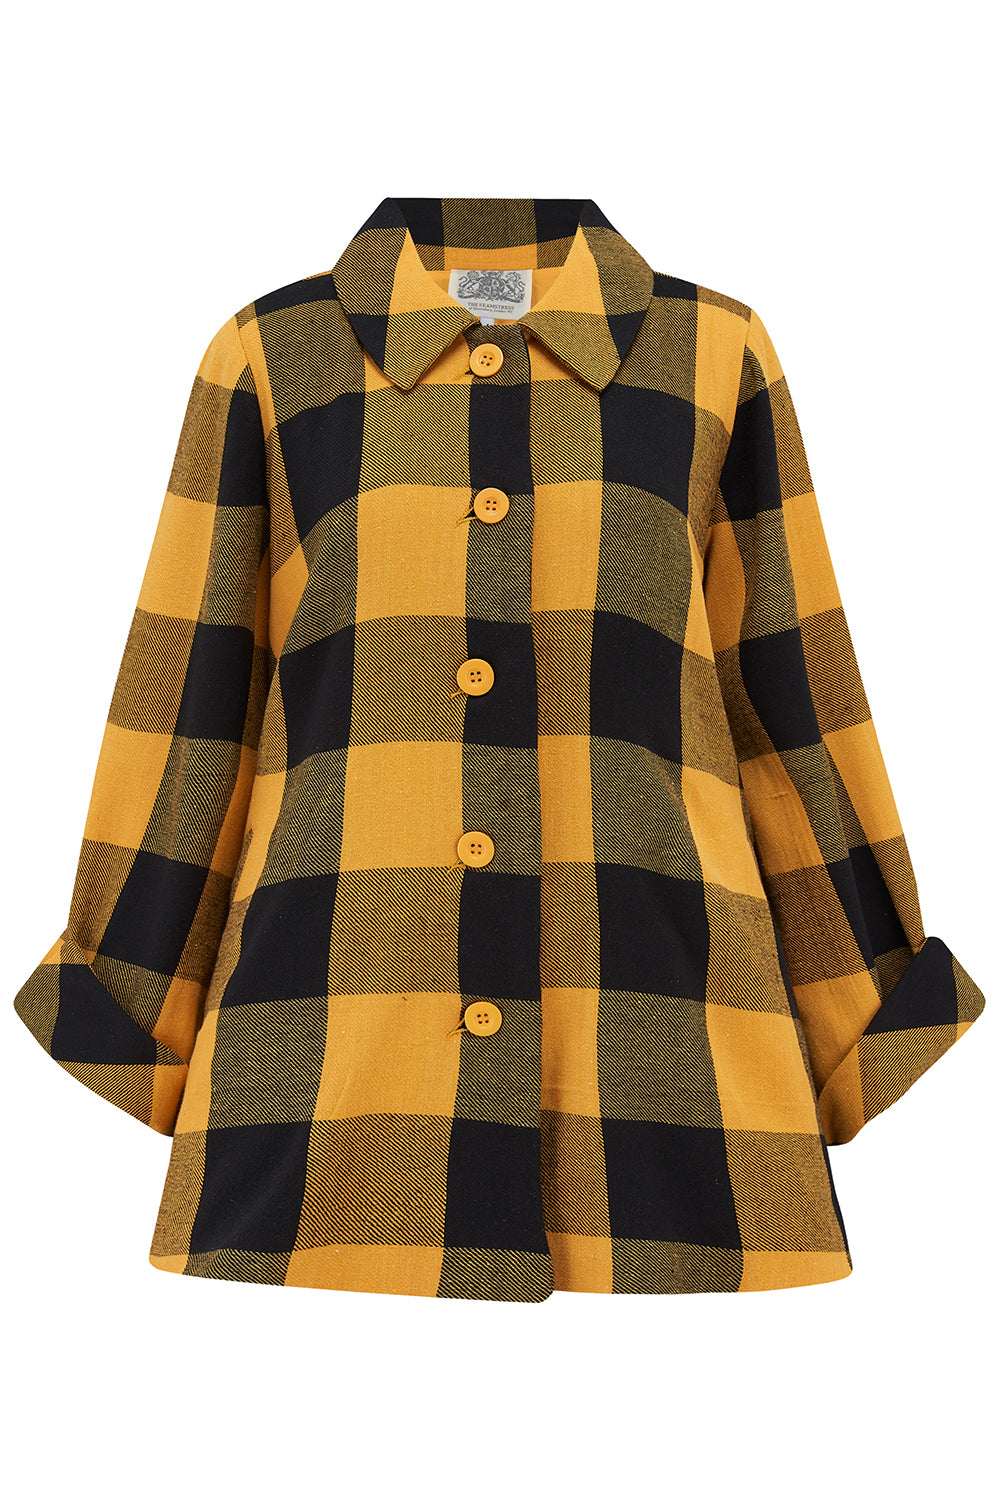 1940s Coats & Jackets Fashion History Classic 1940s Swagger Jacket in Mustard  Black Check Vintage Cape Style Inspired Over Coat £89.00 AT vintagedancer.com